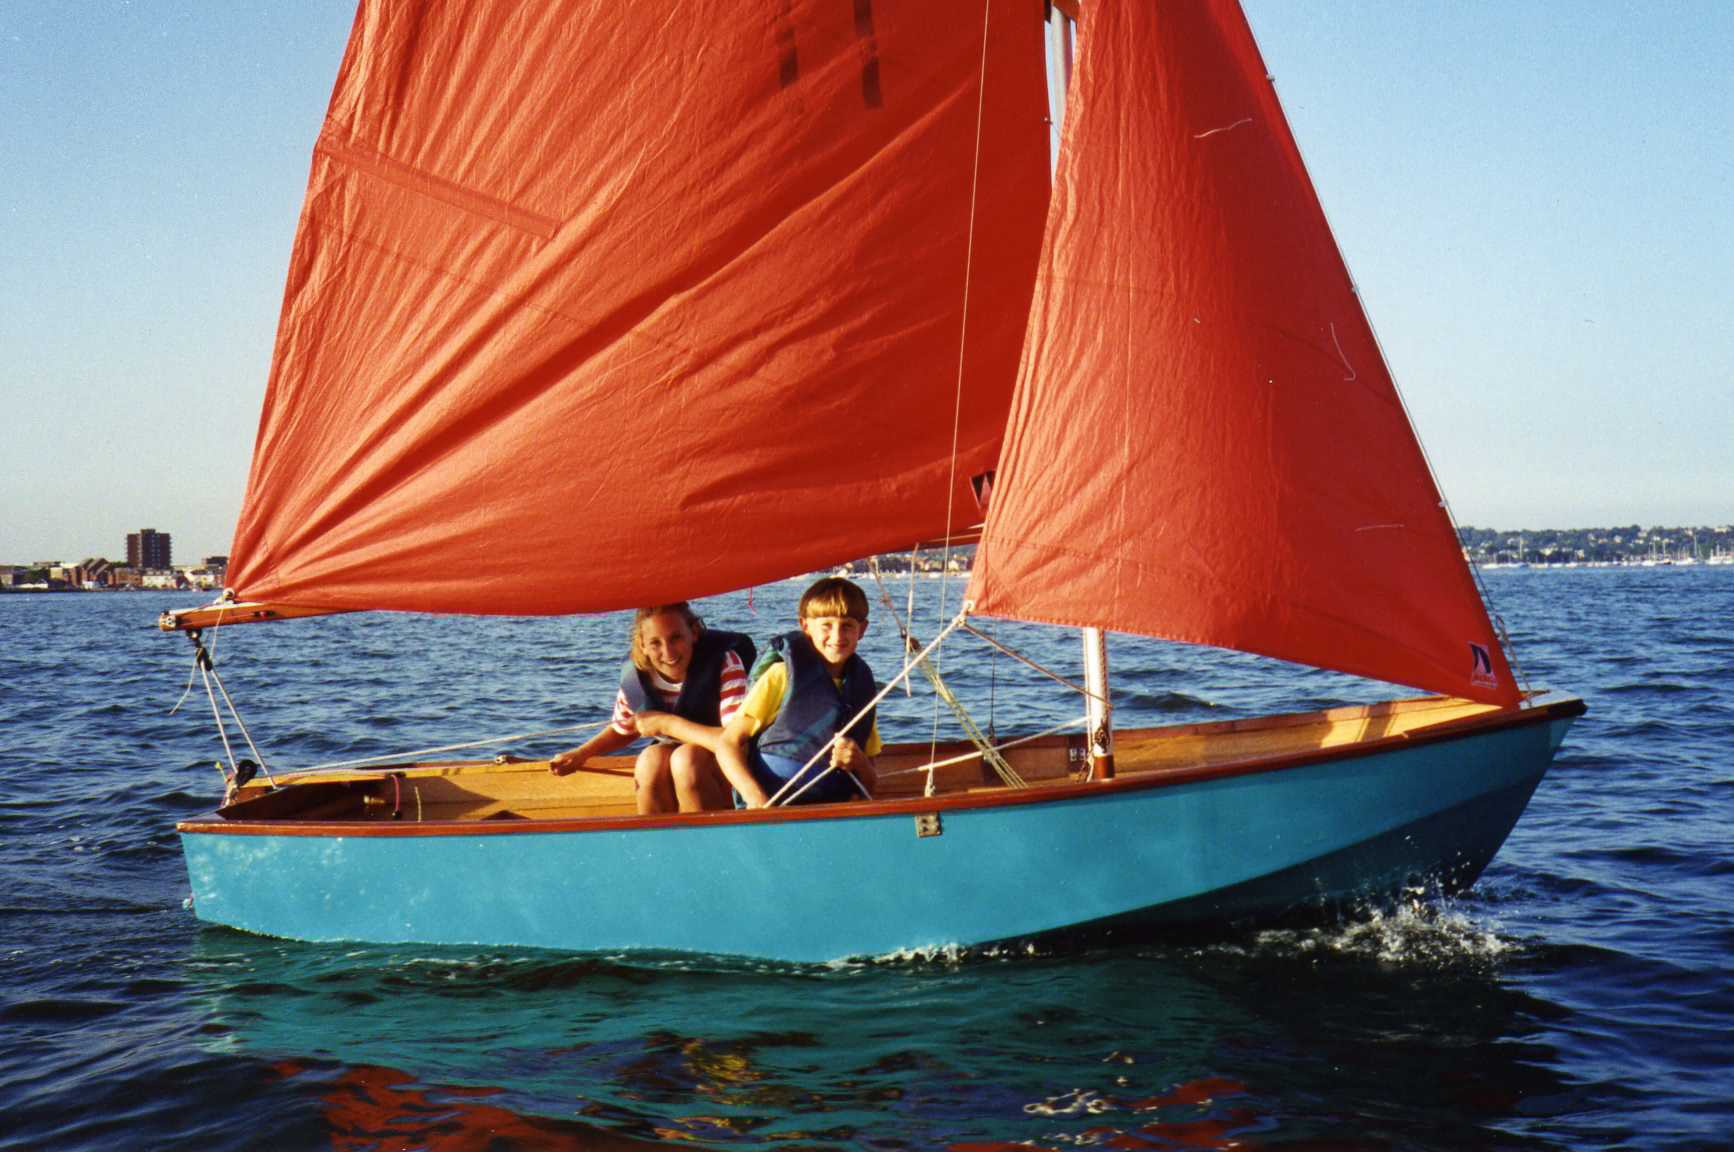 Light blue wooden Mirror dinghy, number 11, sailing on a sunny day